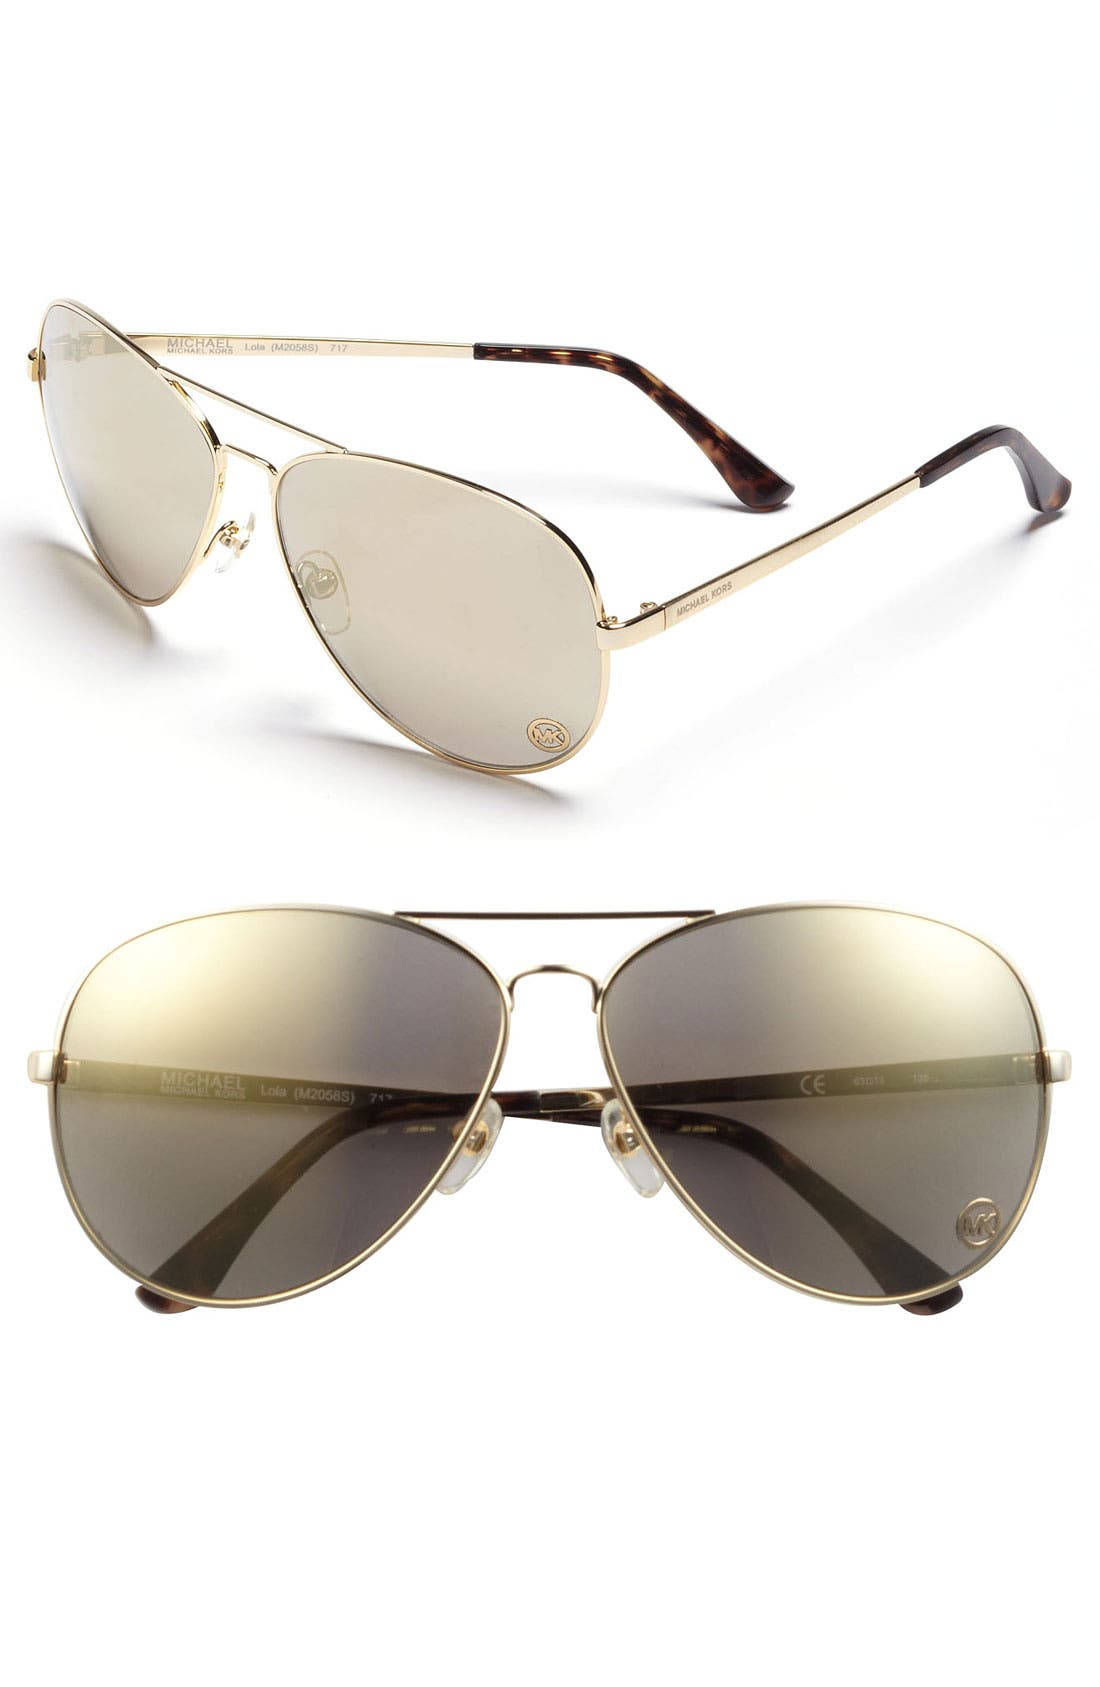 Alternate Image 1 Selected - MICHAEL Michael Kors 'Lola' 63mm Aviator Sunglasses